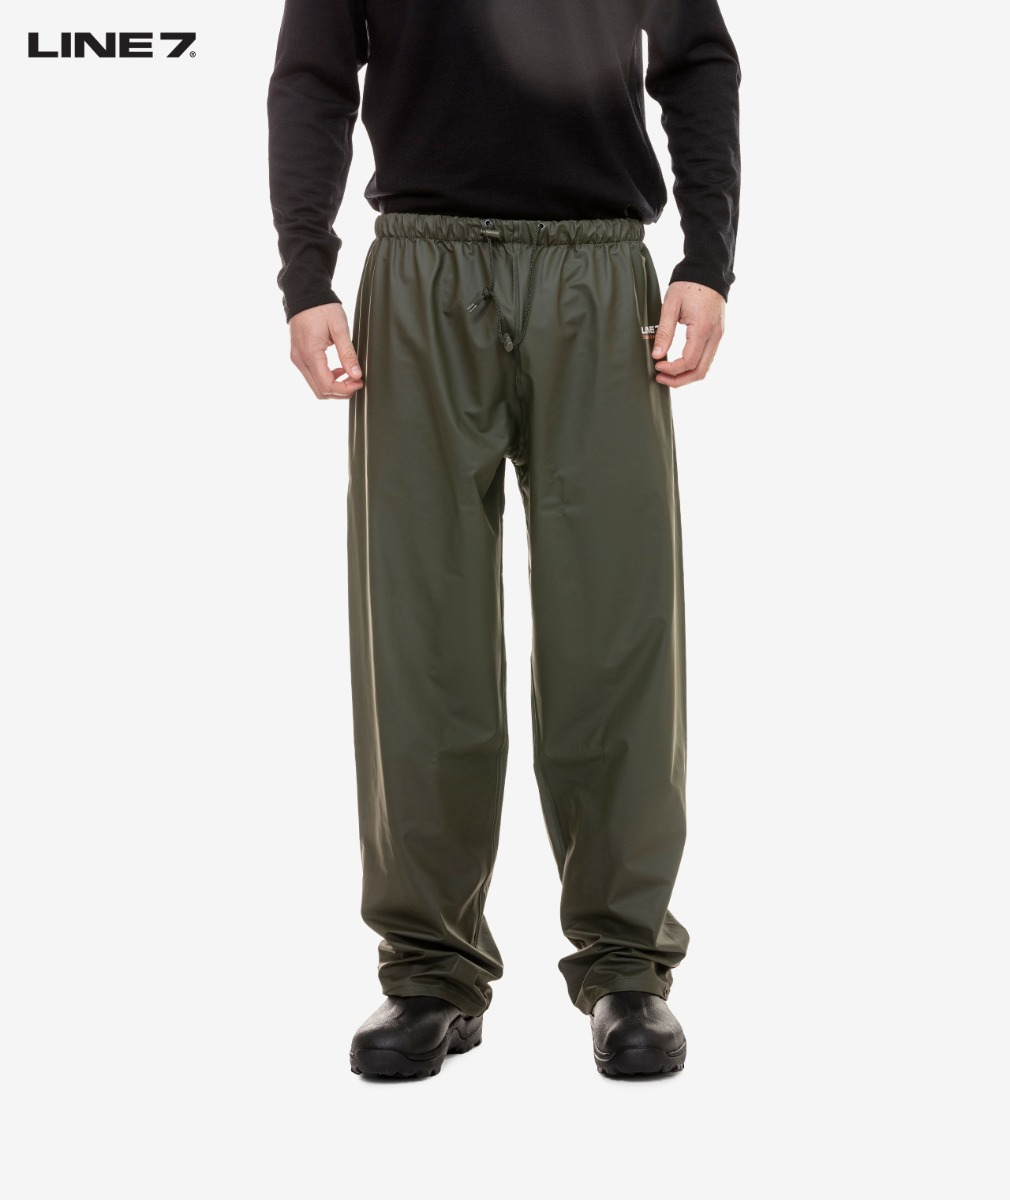 Line 7 Men's Station Green Waterproof Over Trouser